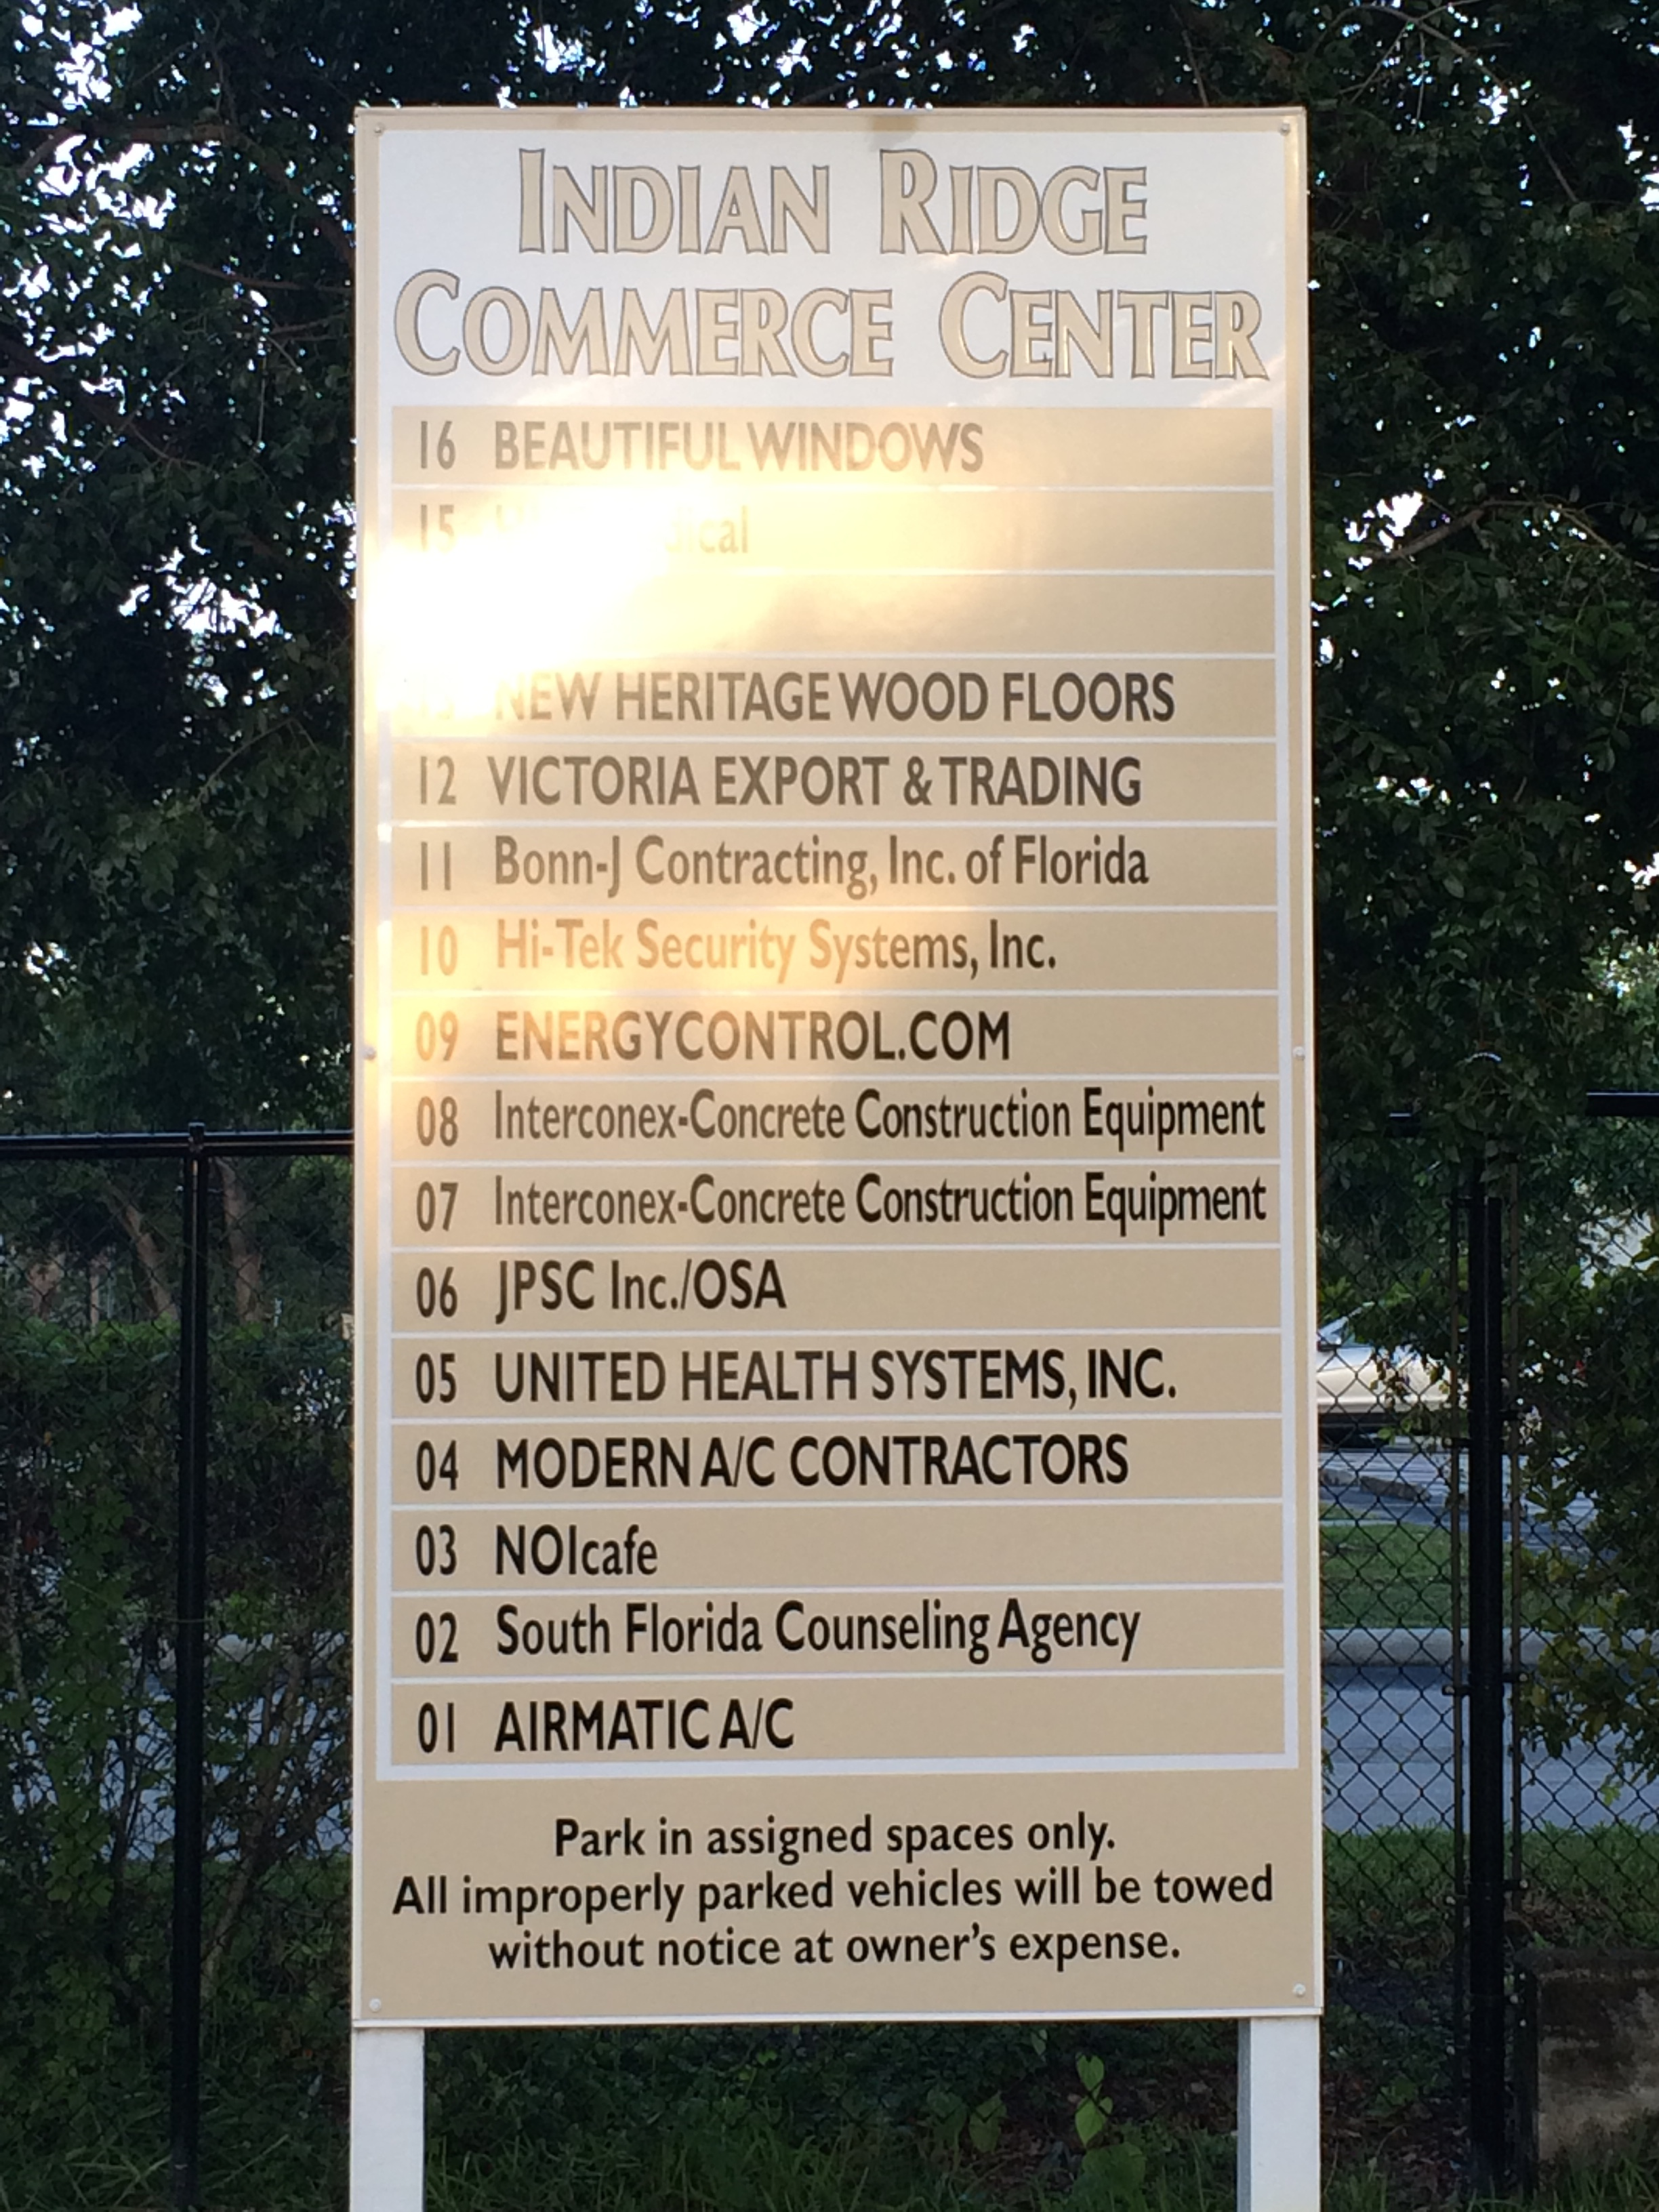 Conveniently Located 15 minutes from Fort Lauderdale International Airport, Hi-tek Security Systems is central to a vibrant international community.